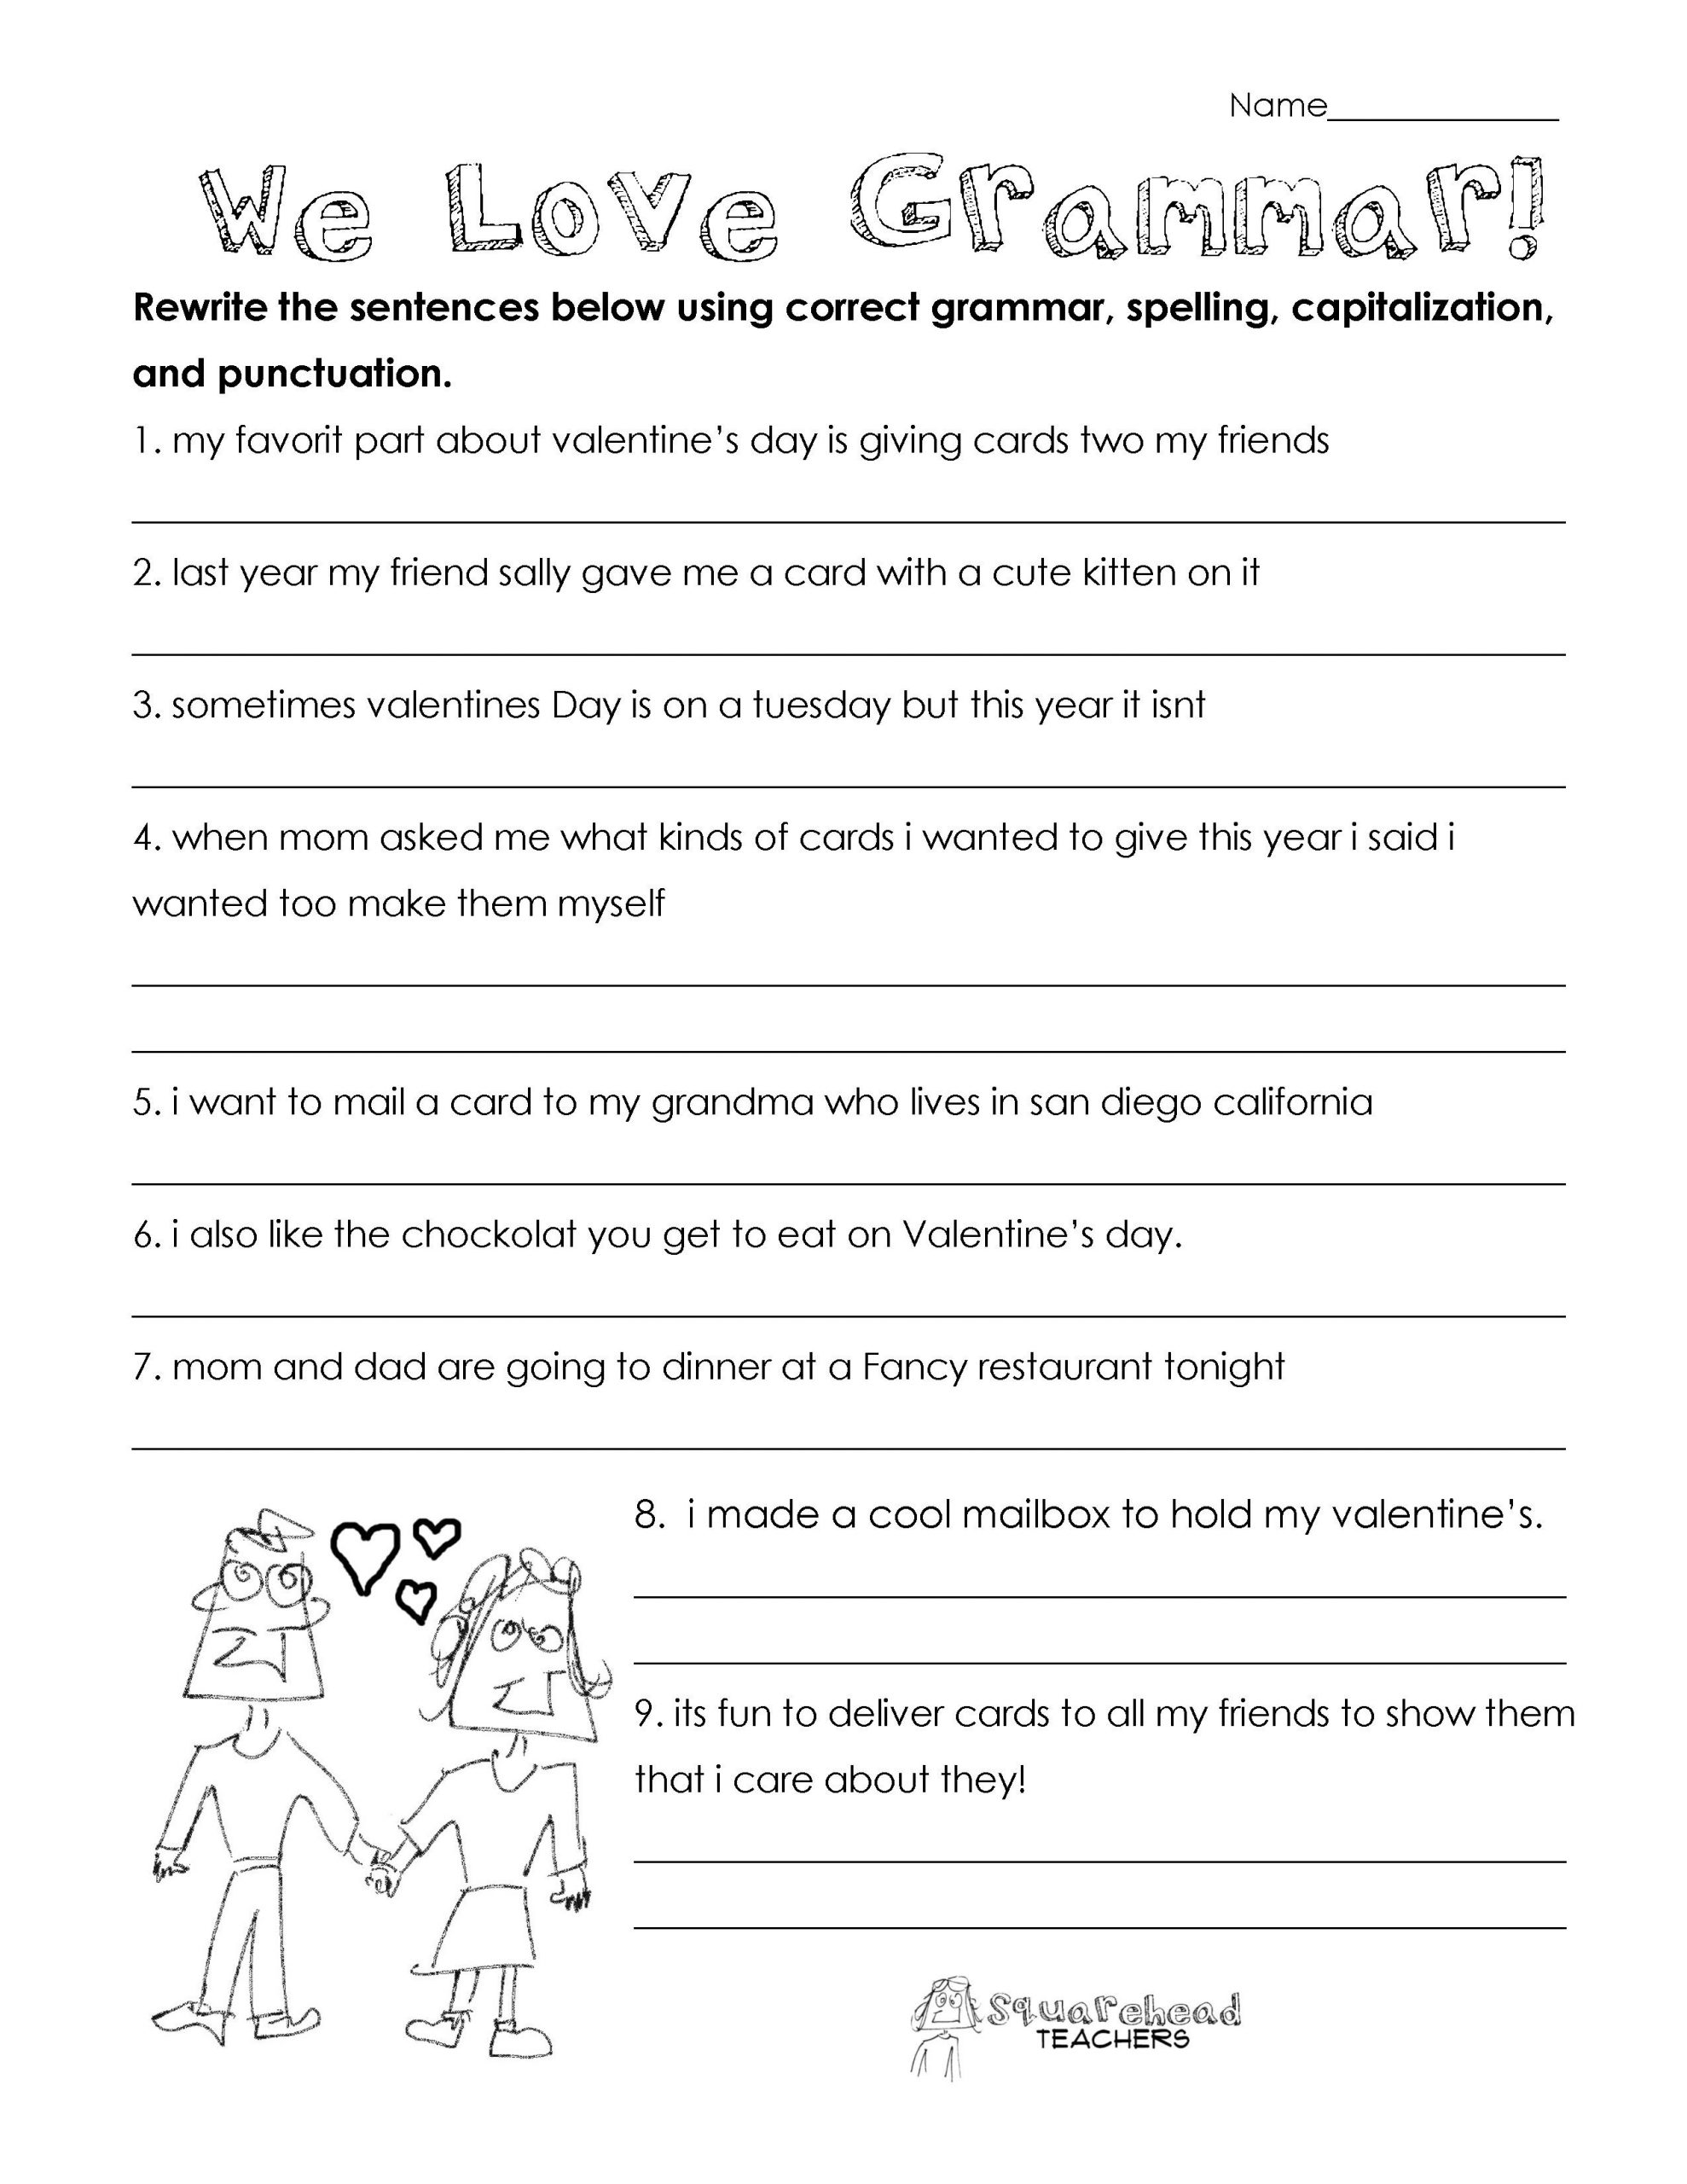 Text Structure 3rd Grade Worksheets Valentine S Day Grammar Free Worksheet for 3rd Grade and Up